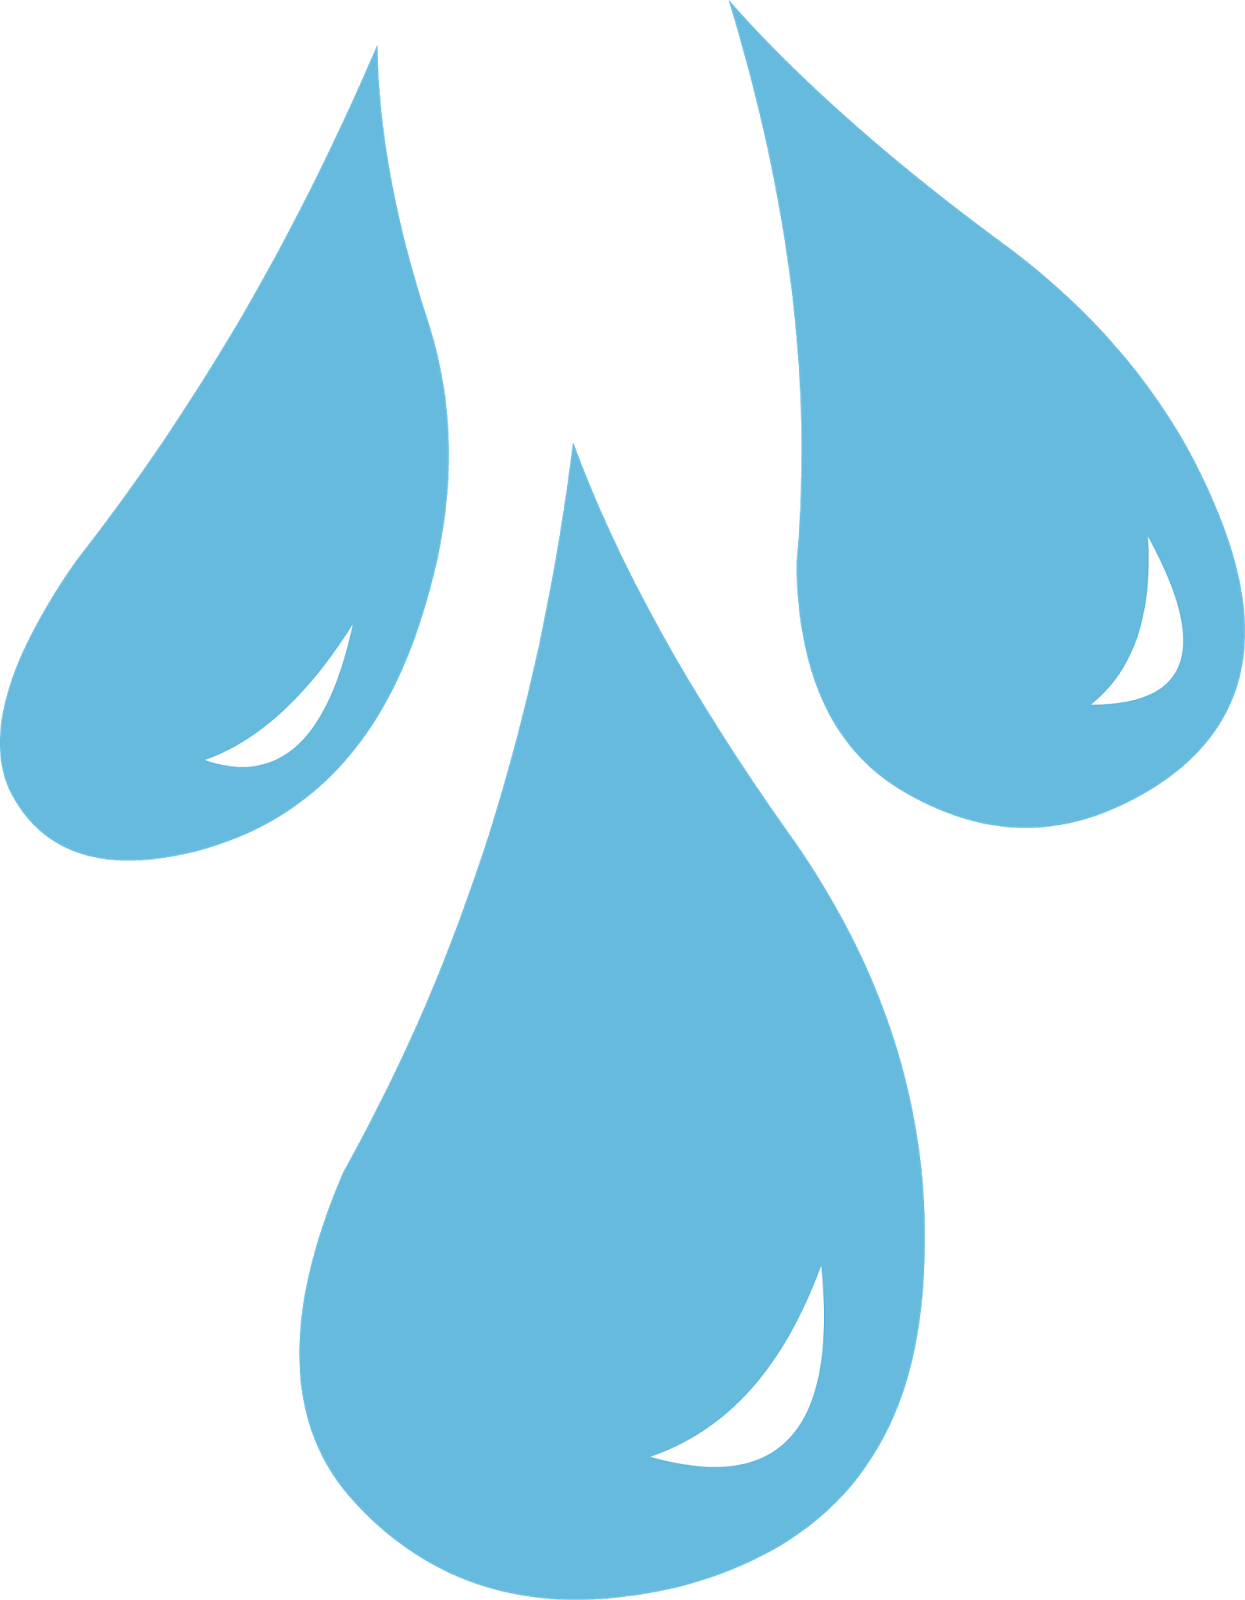 Tears Transparent Background Images Reverse Search